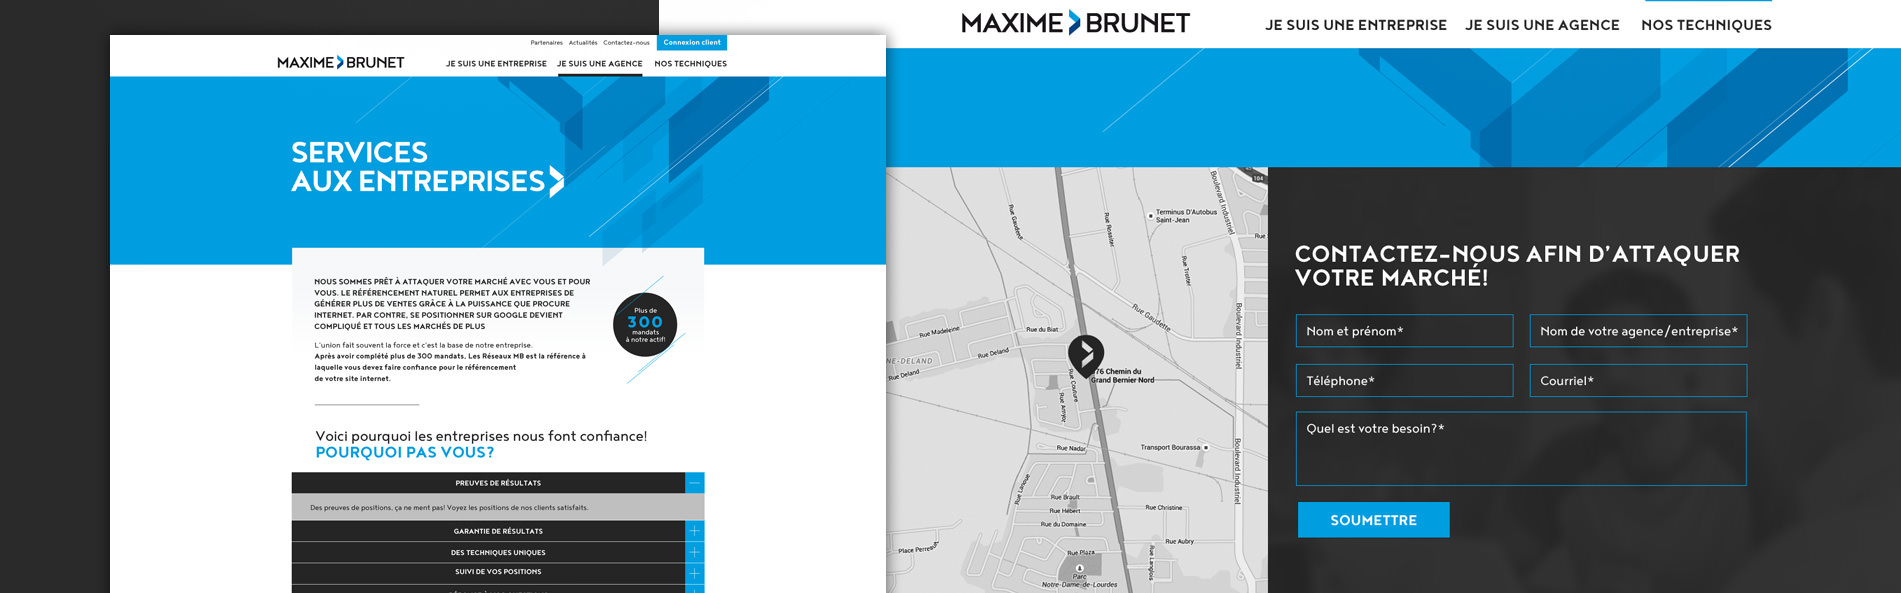 maxime-brunet-seo-optimisation-04